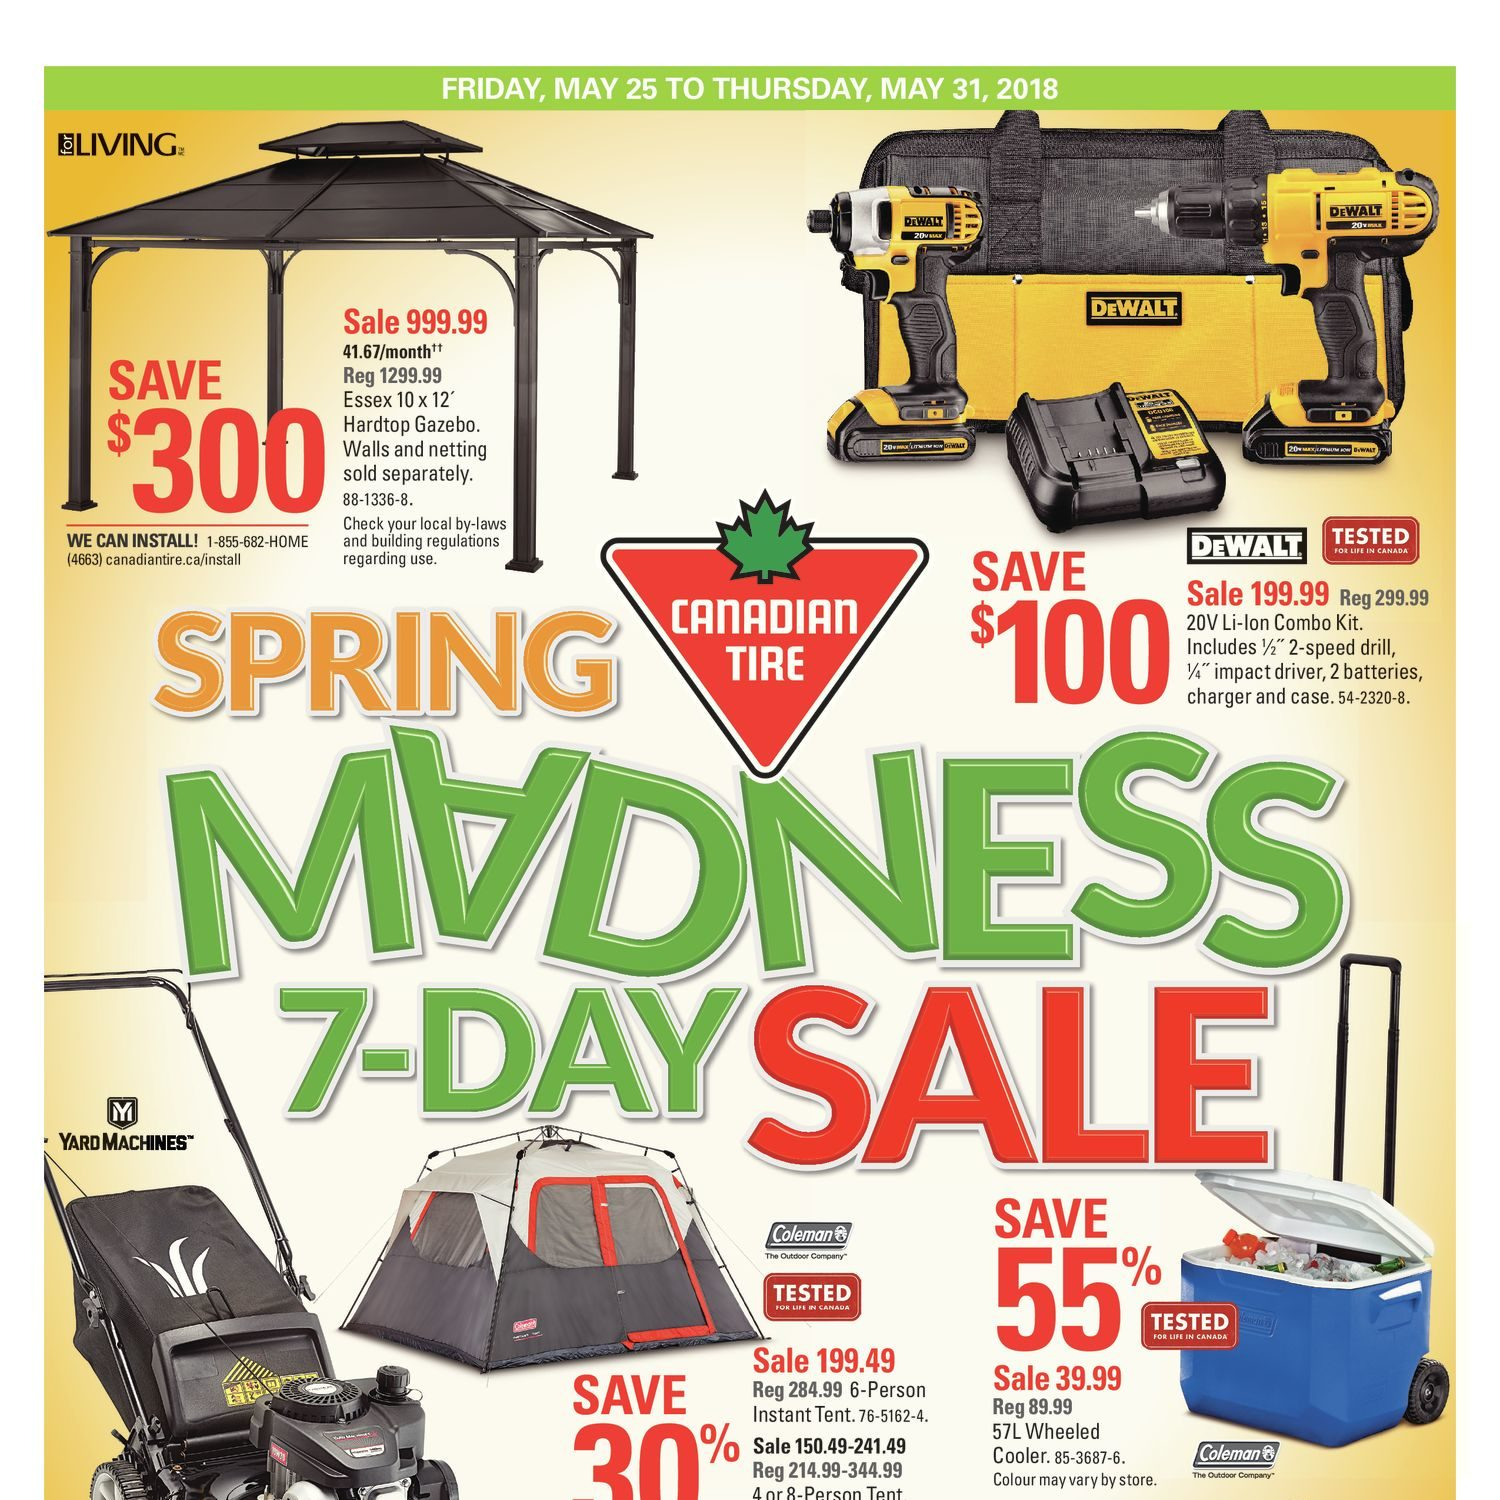 canadian tire weekly flyer spring madness 7 day sale may 25 31